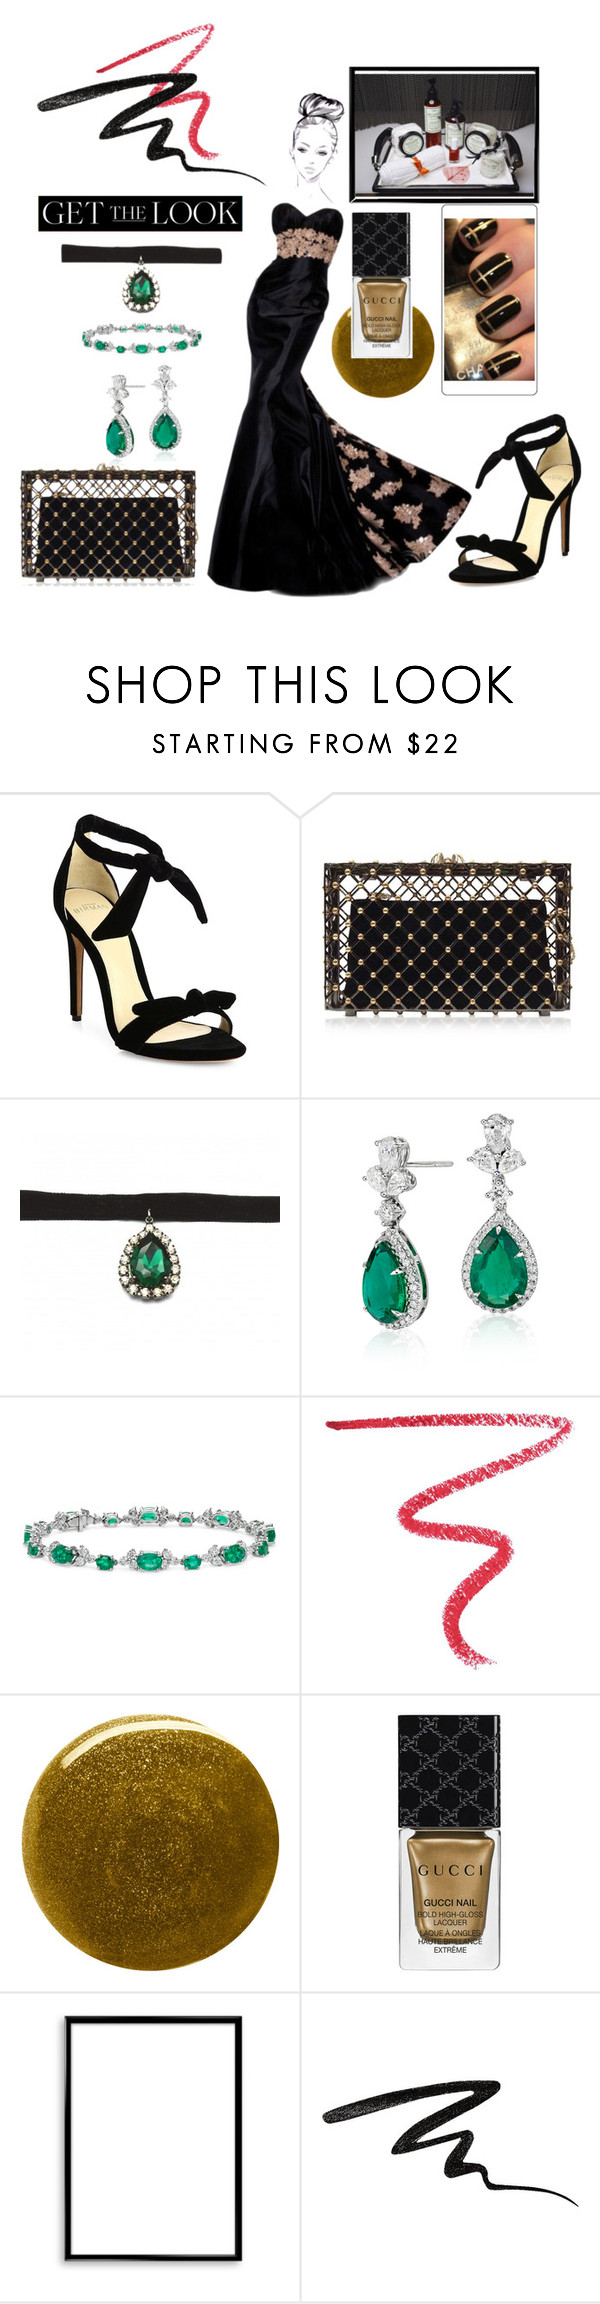 """""""Get the Look: Met Gala 2016  Back in Black"""" by mavinex-de-nova ❤ liked on Polyvore featuring Alexandre Birman, Charlotte Olympia, Zara Taylor, Blue Nile, By Terry, Monday, Burberry, Gucci, Bomedo and Stila"""